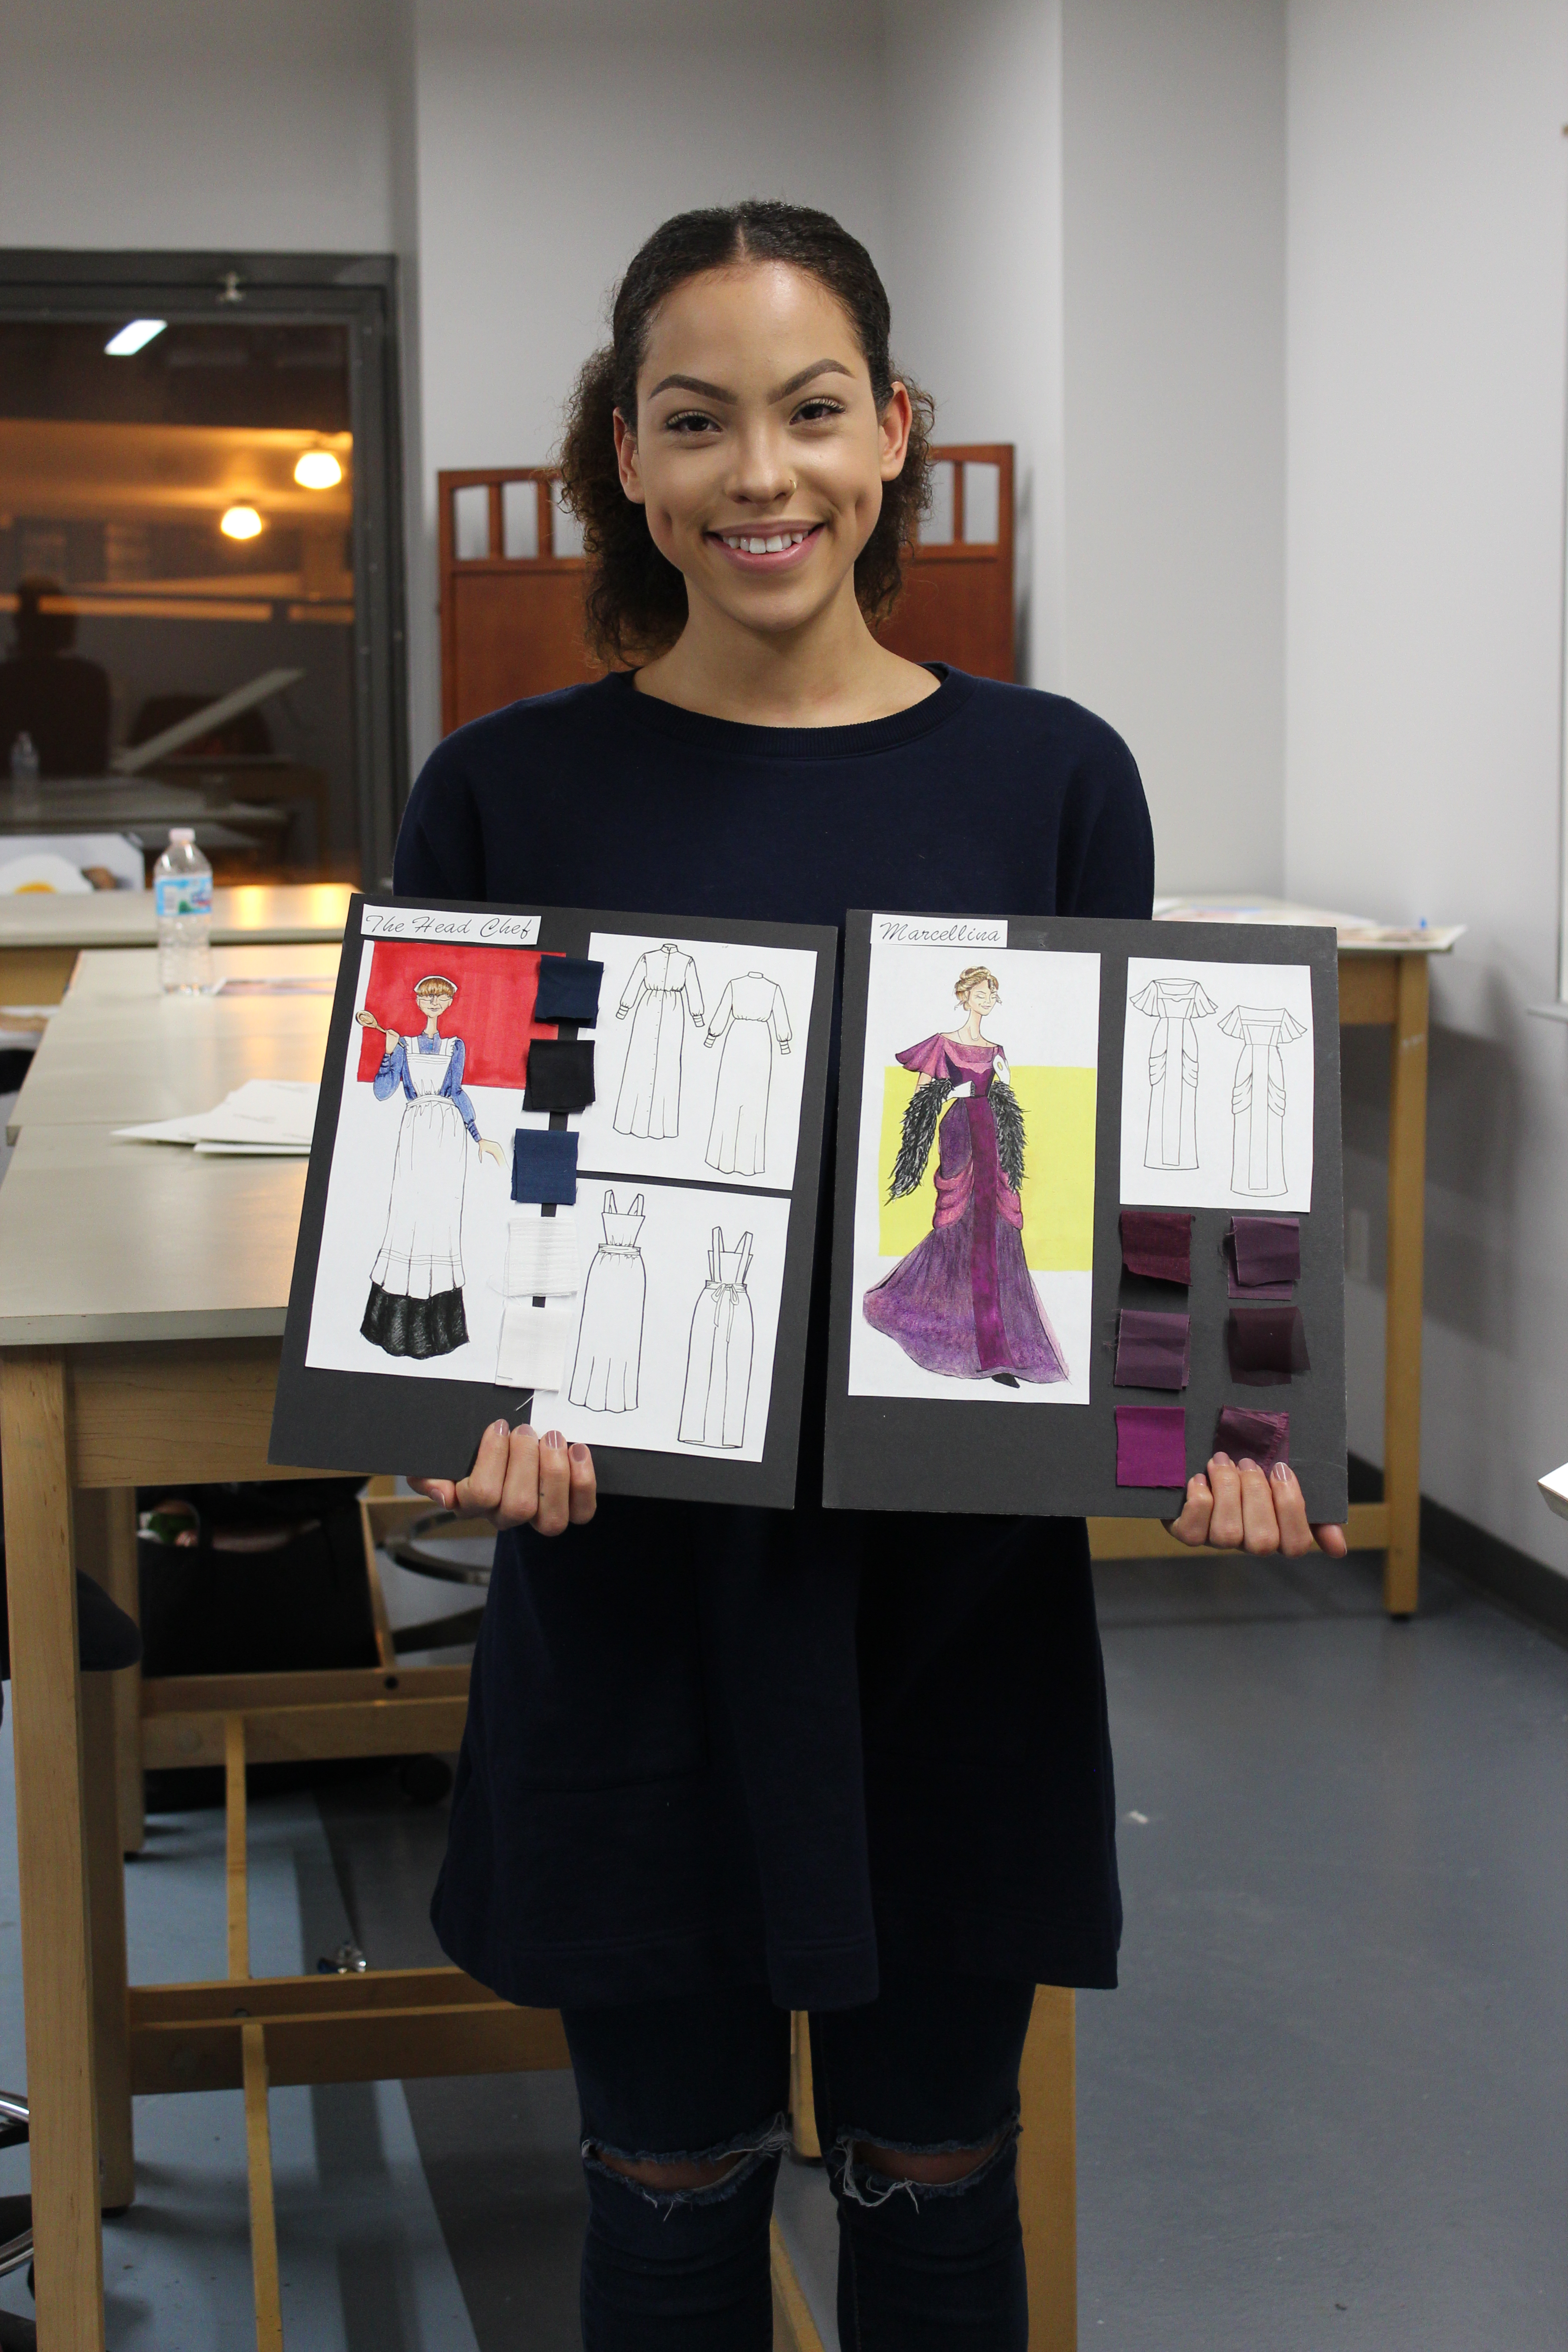 Fashion Studies student holding illustration